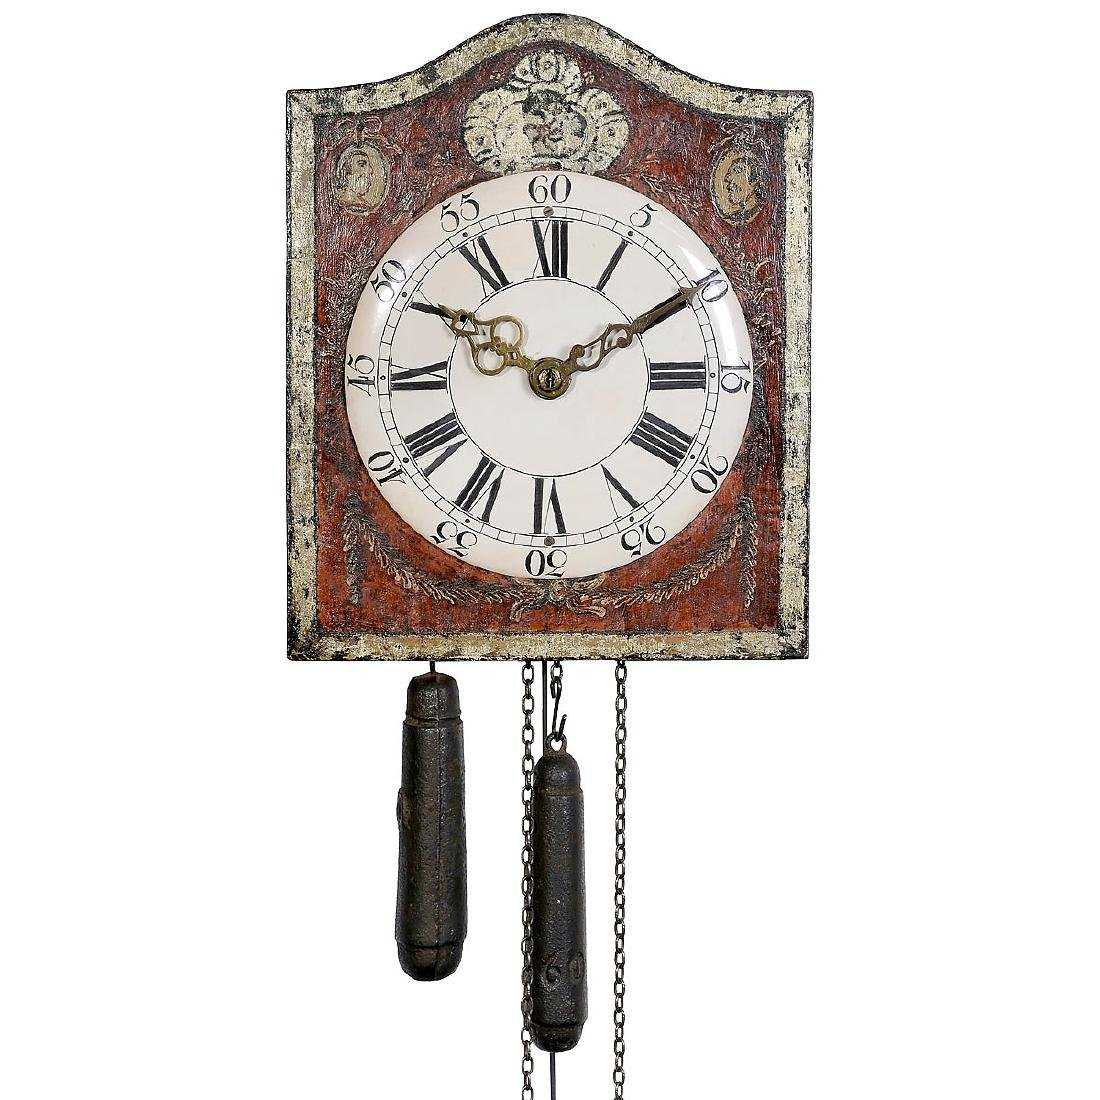 Early Southern German Wall Clock, c. 1780